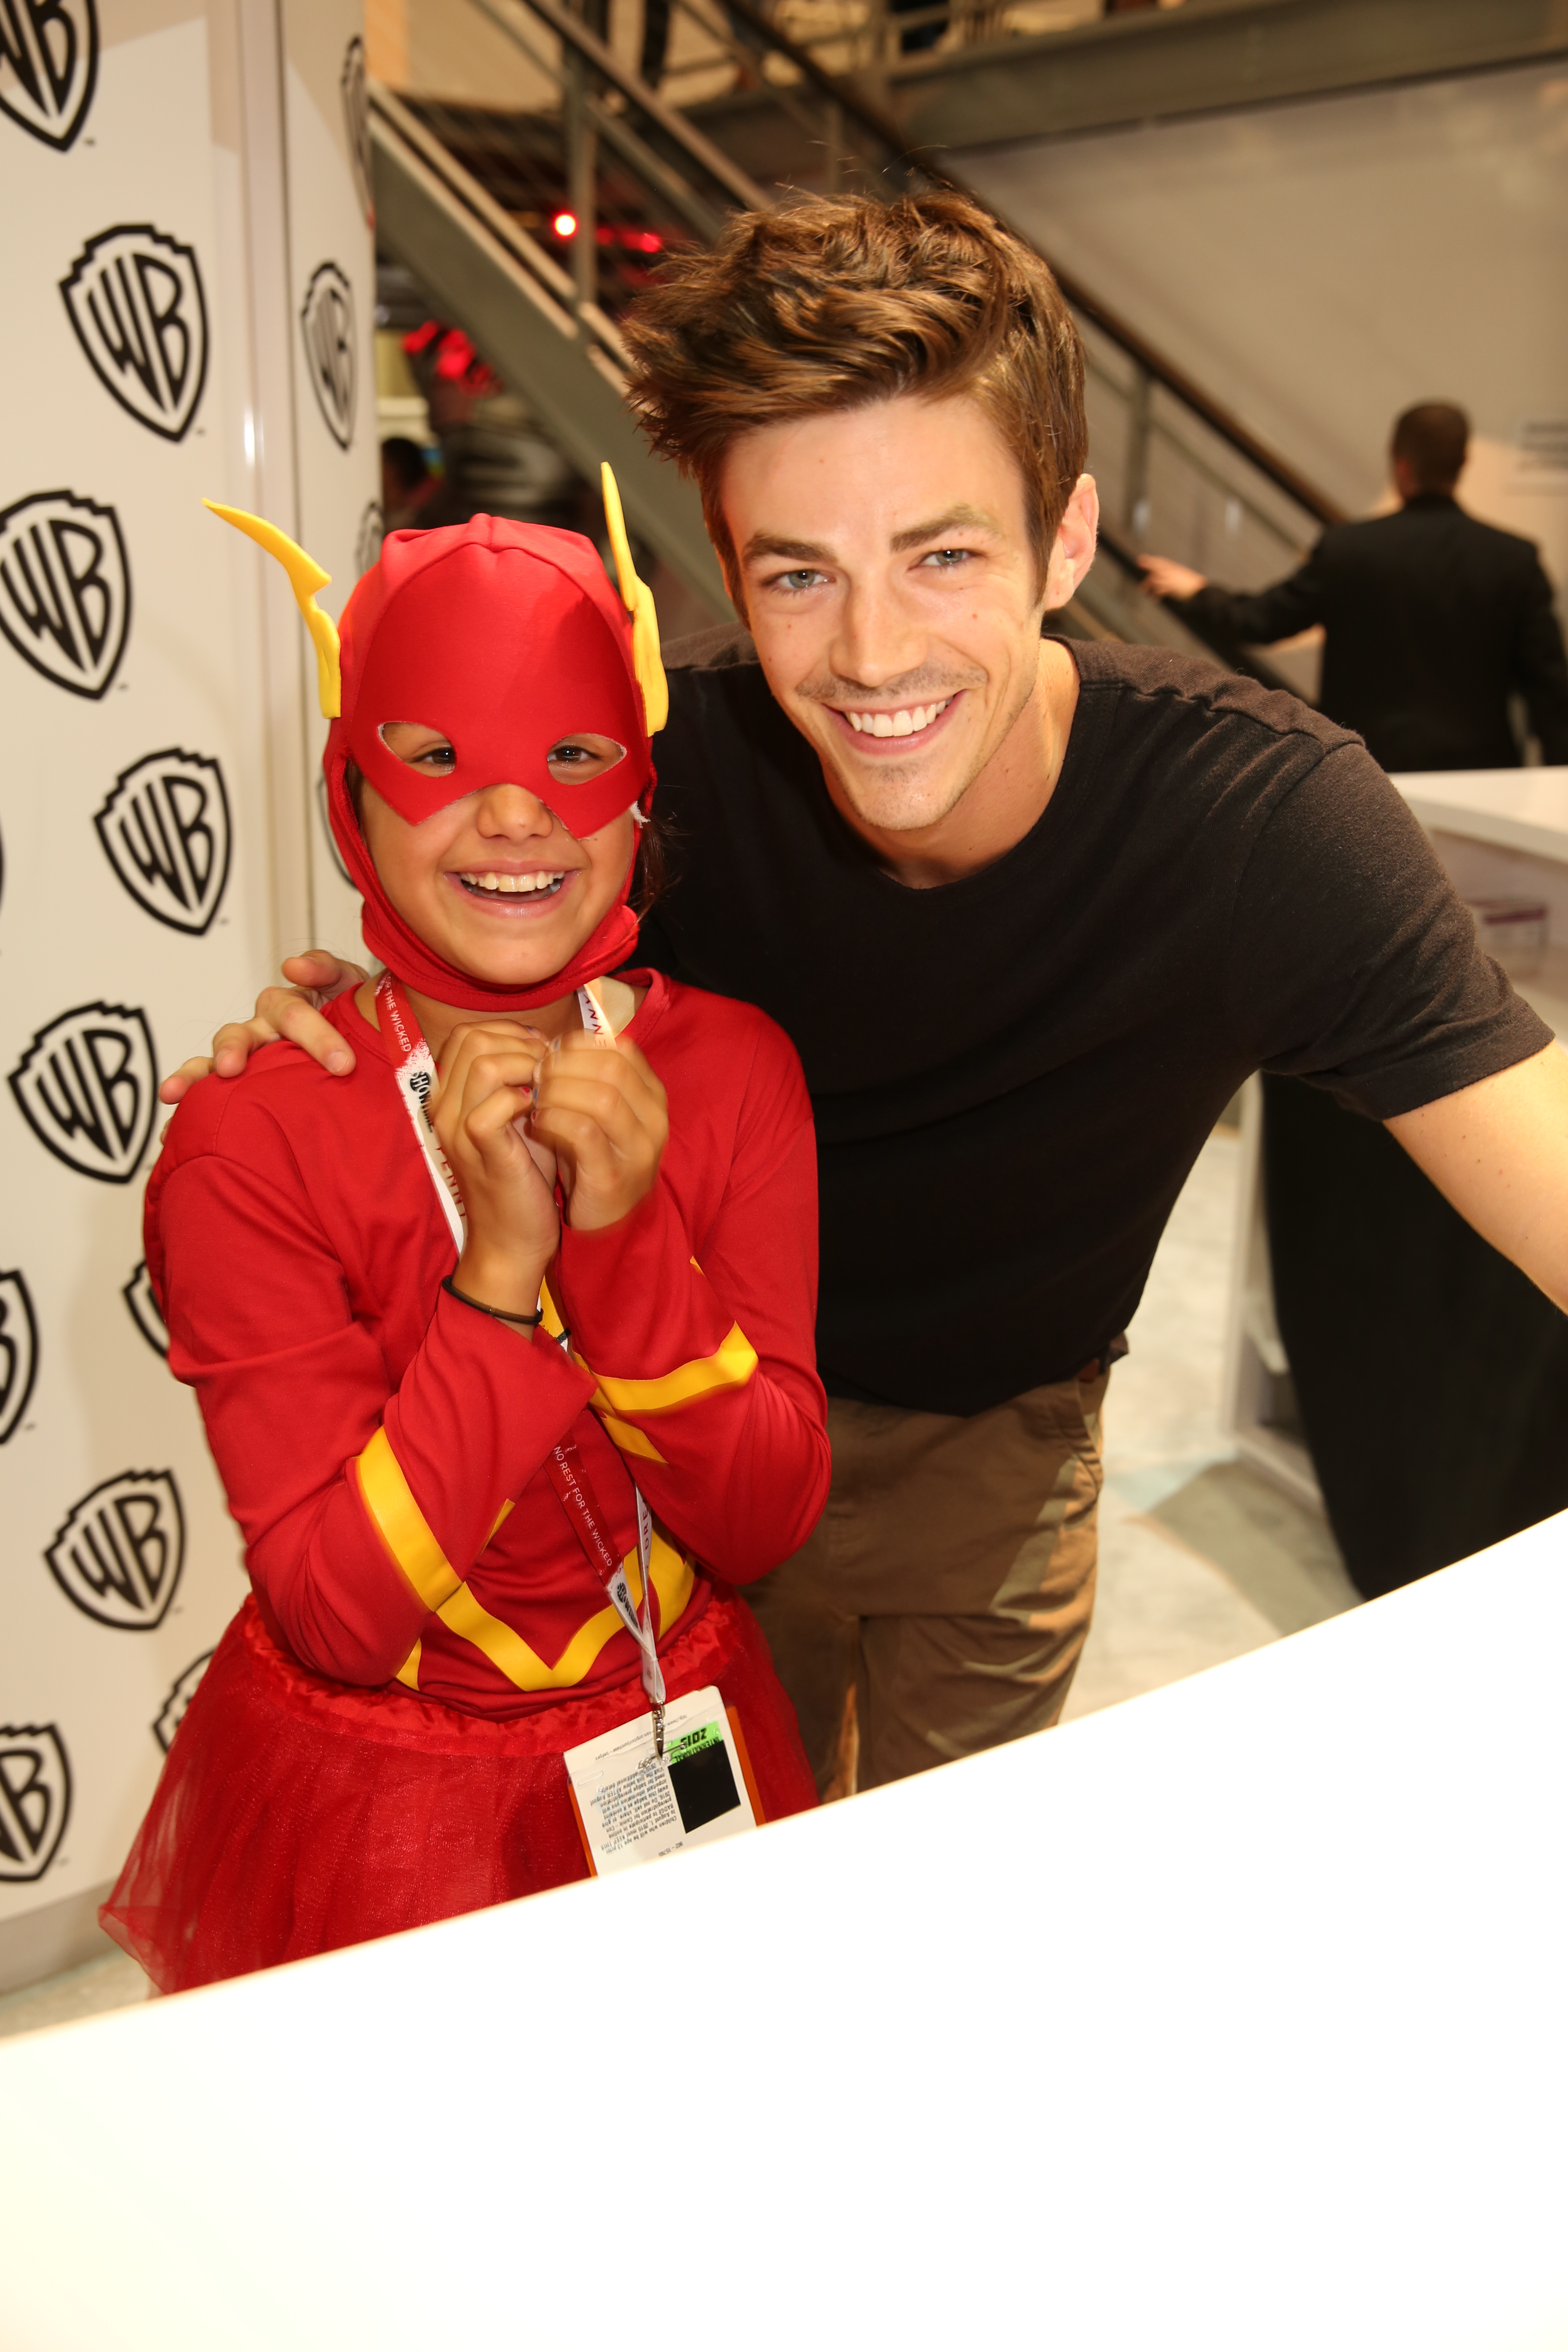 The flash signing a young flash meets his tv counterpart series star grant gustin at the flash signing in the warner bros booth during comic con 2015 wbsdcc 2015 wbei m4hsunfo